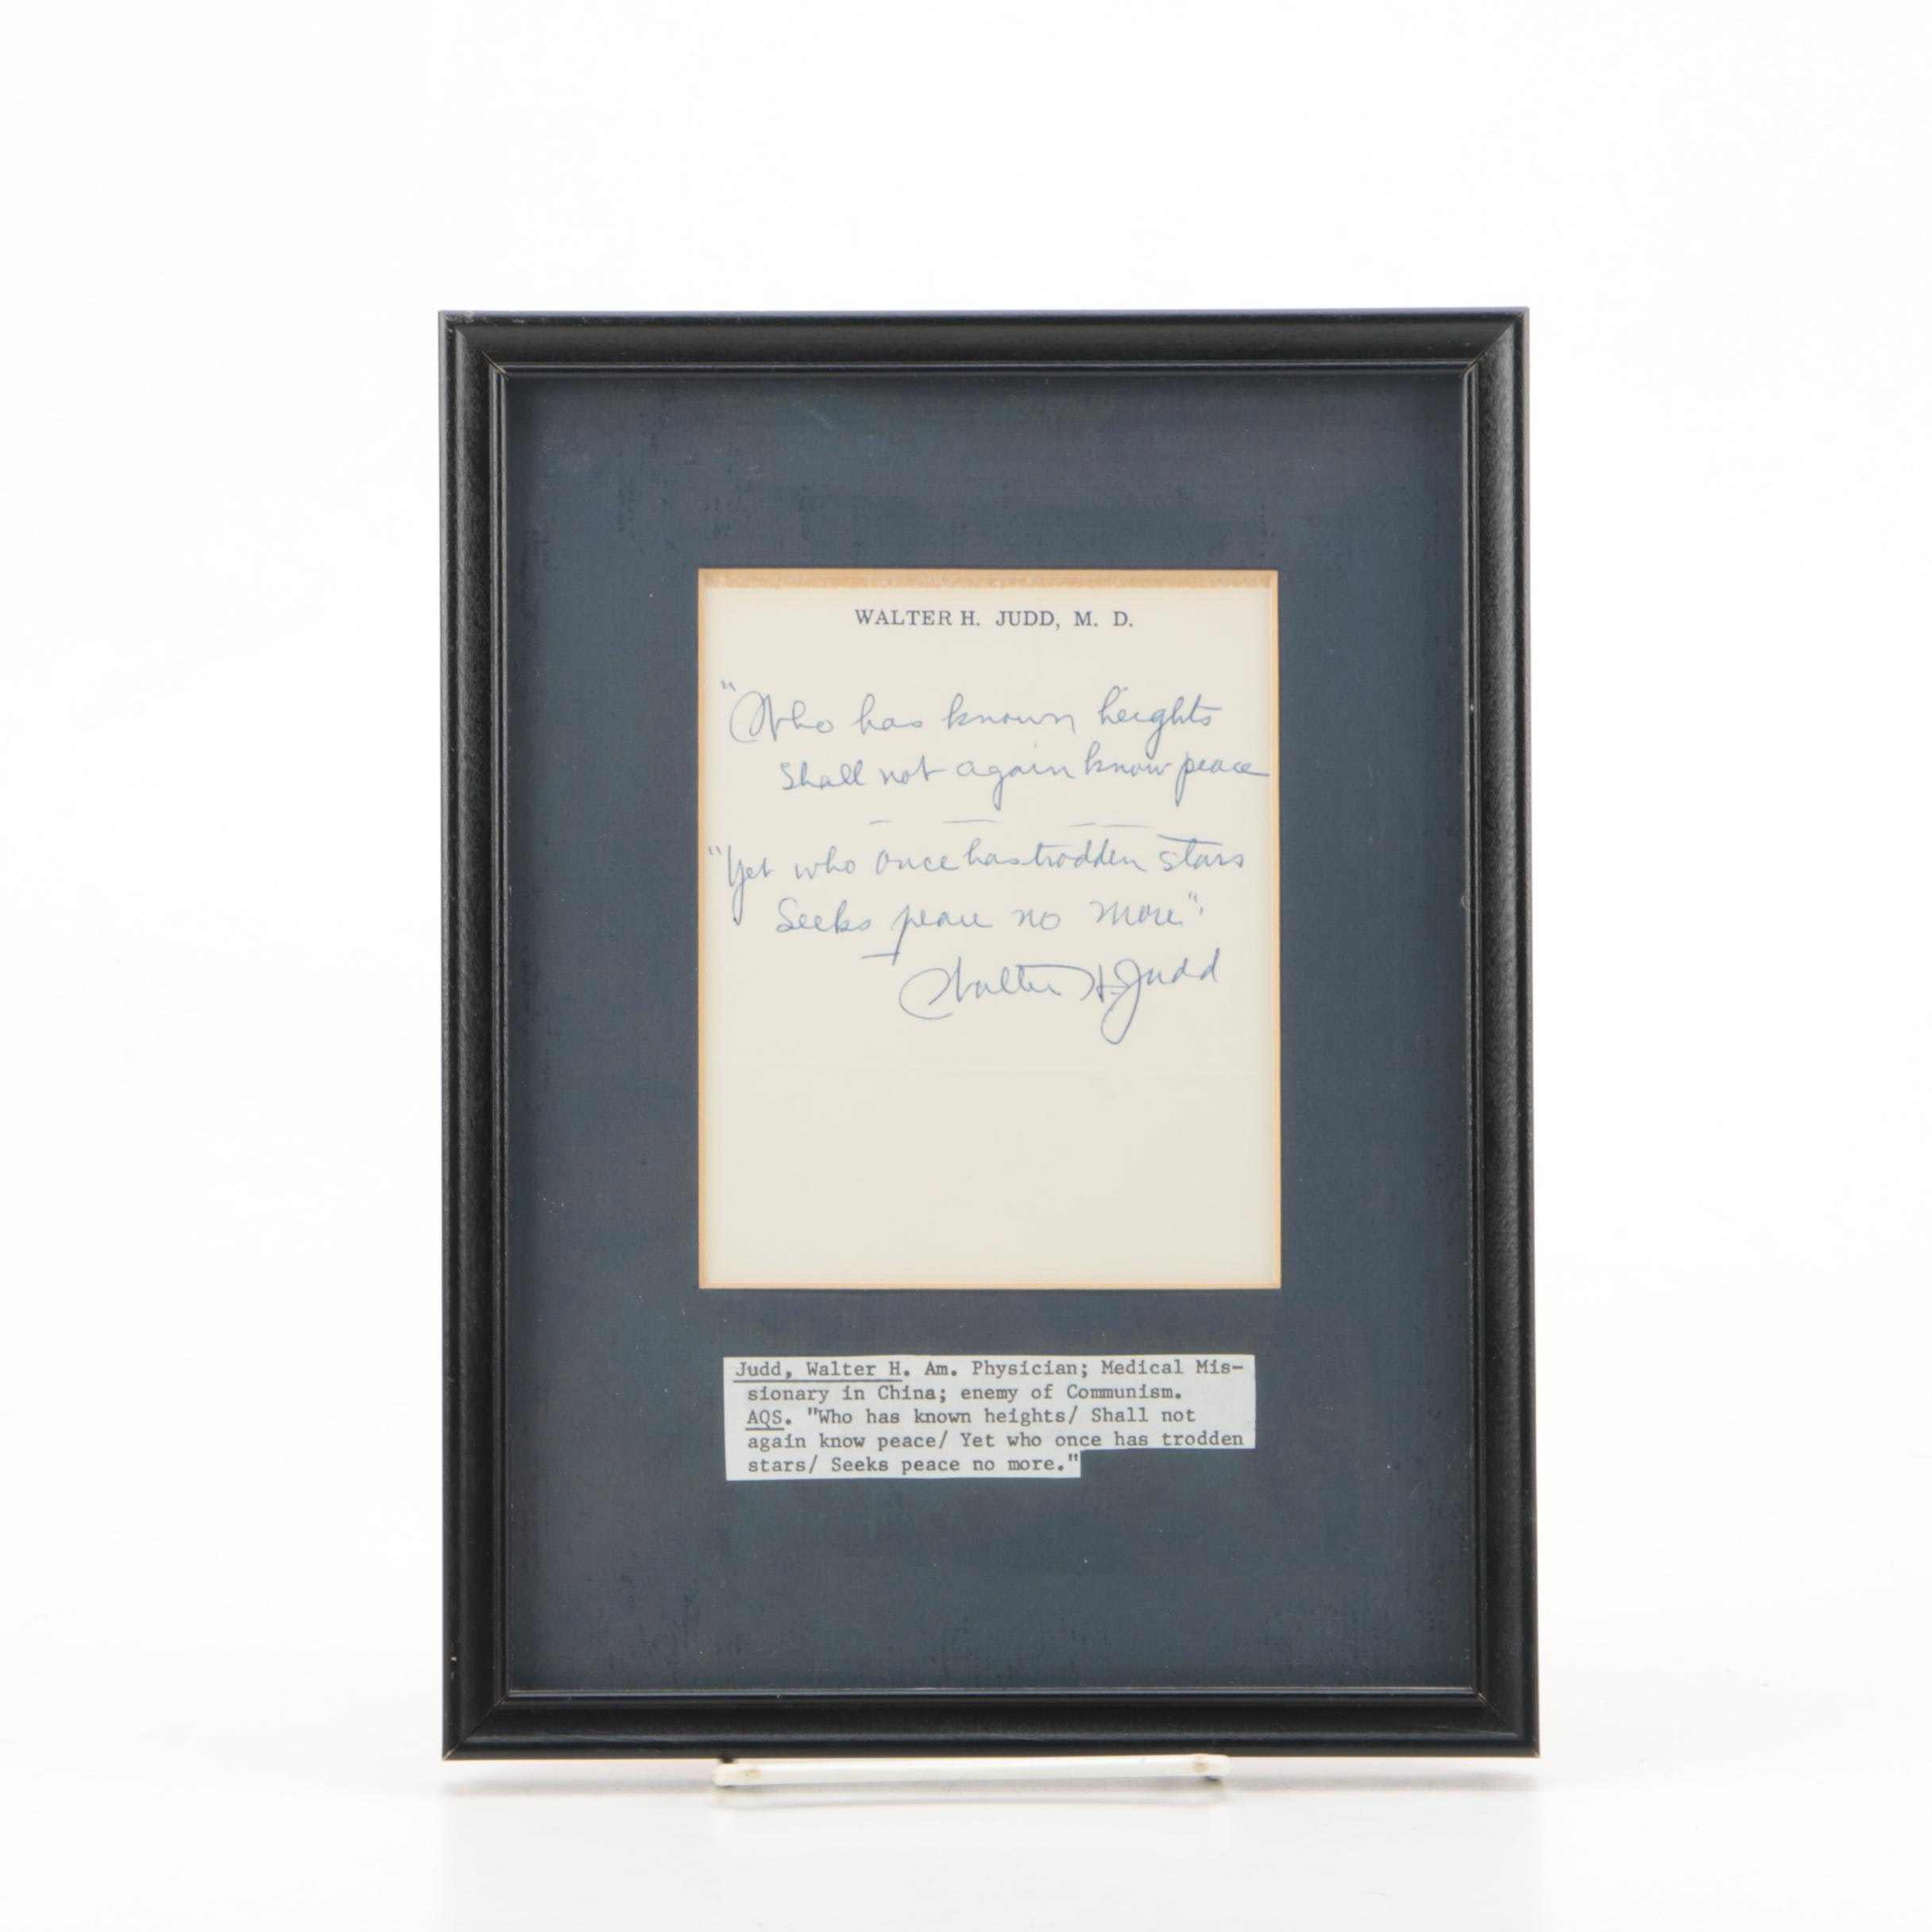 Note Signed By Walter H. Judd American Politician, Physician, Chinese Missionary